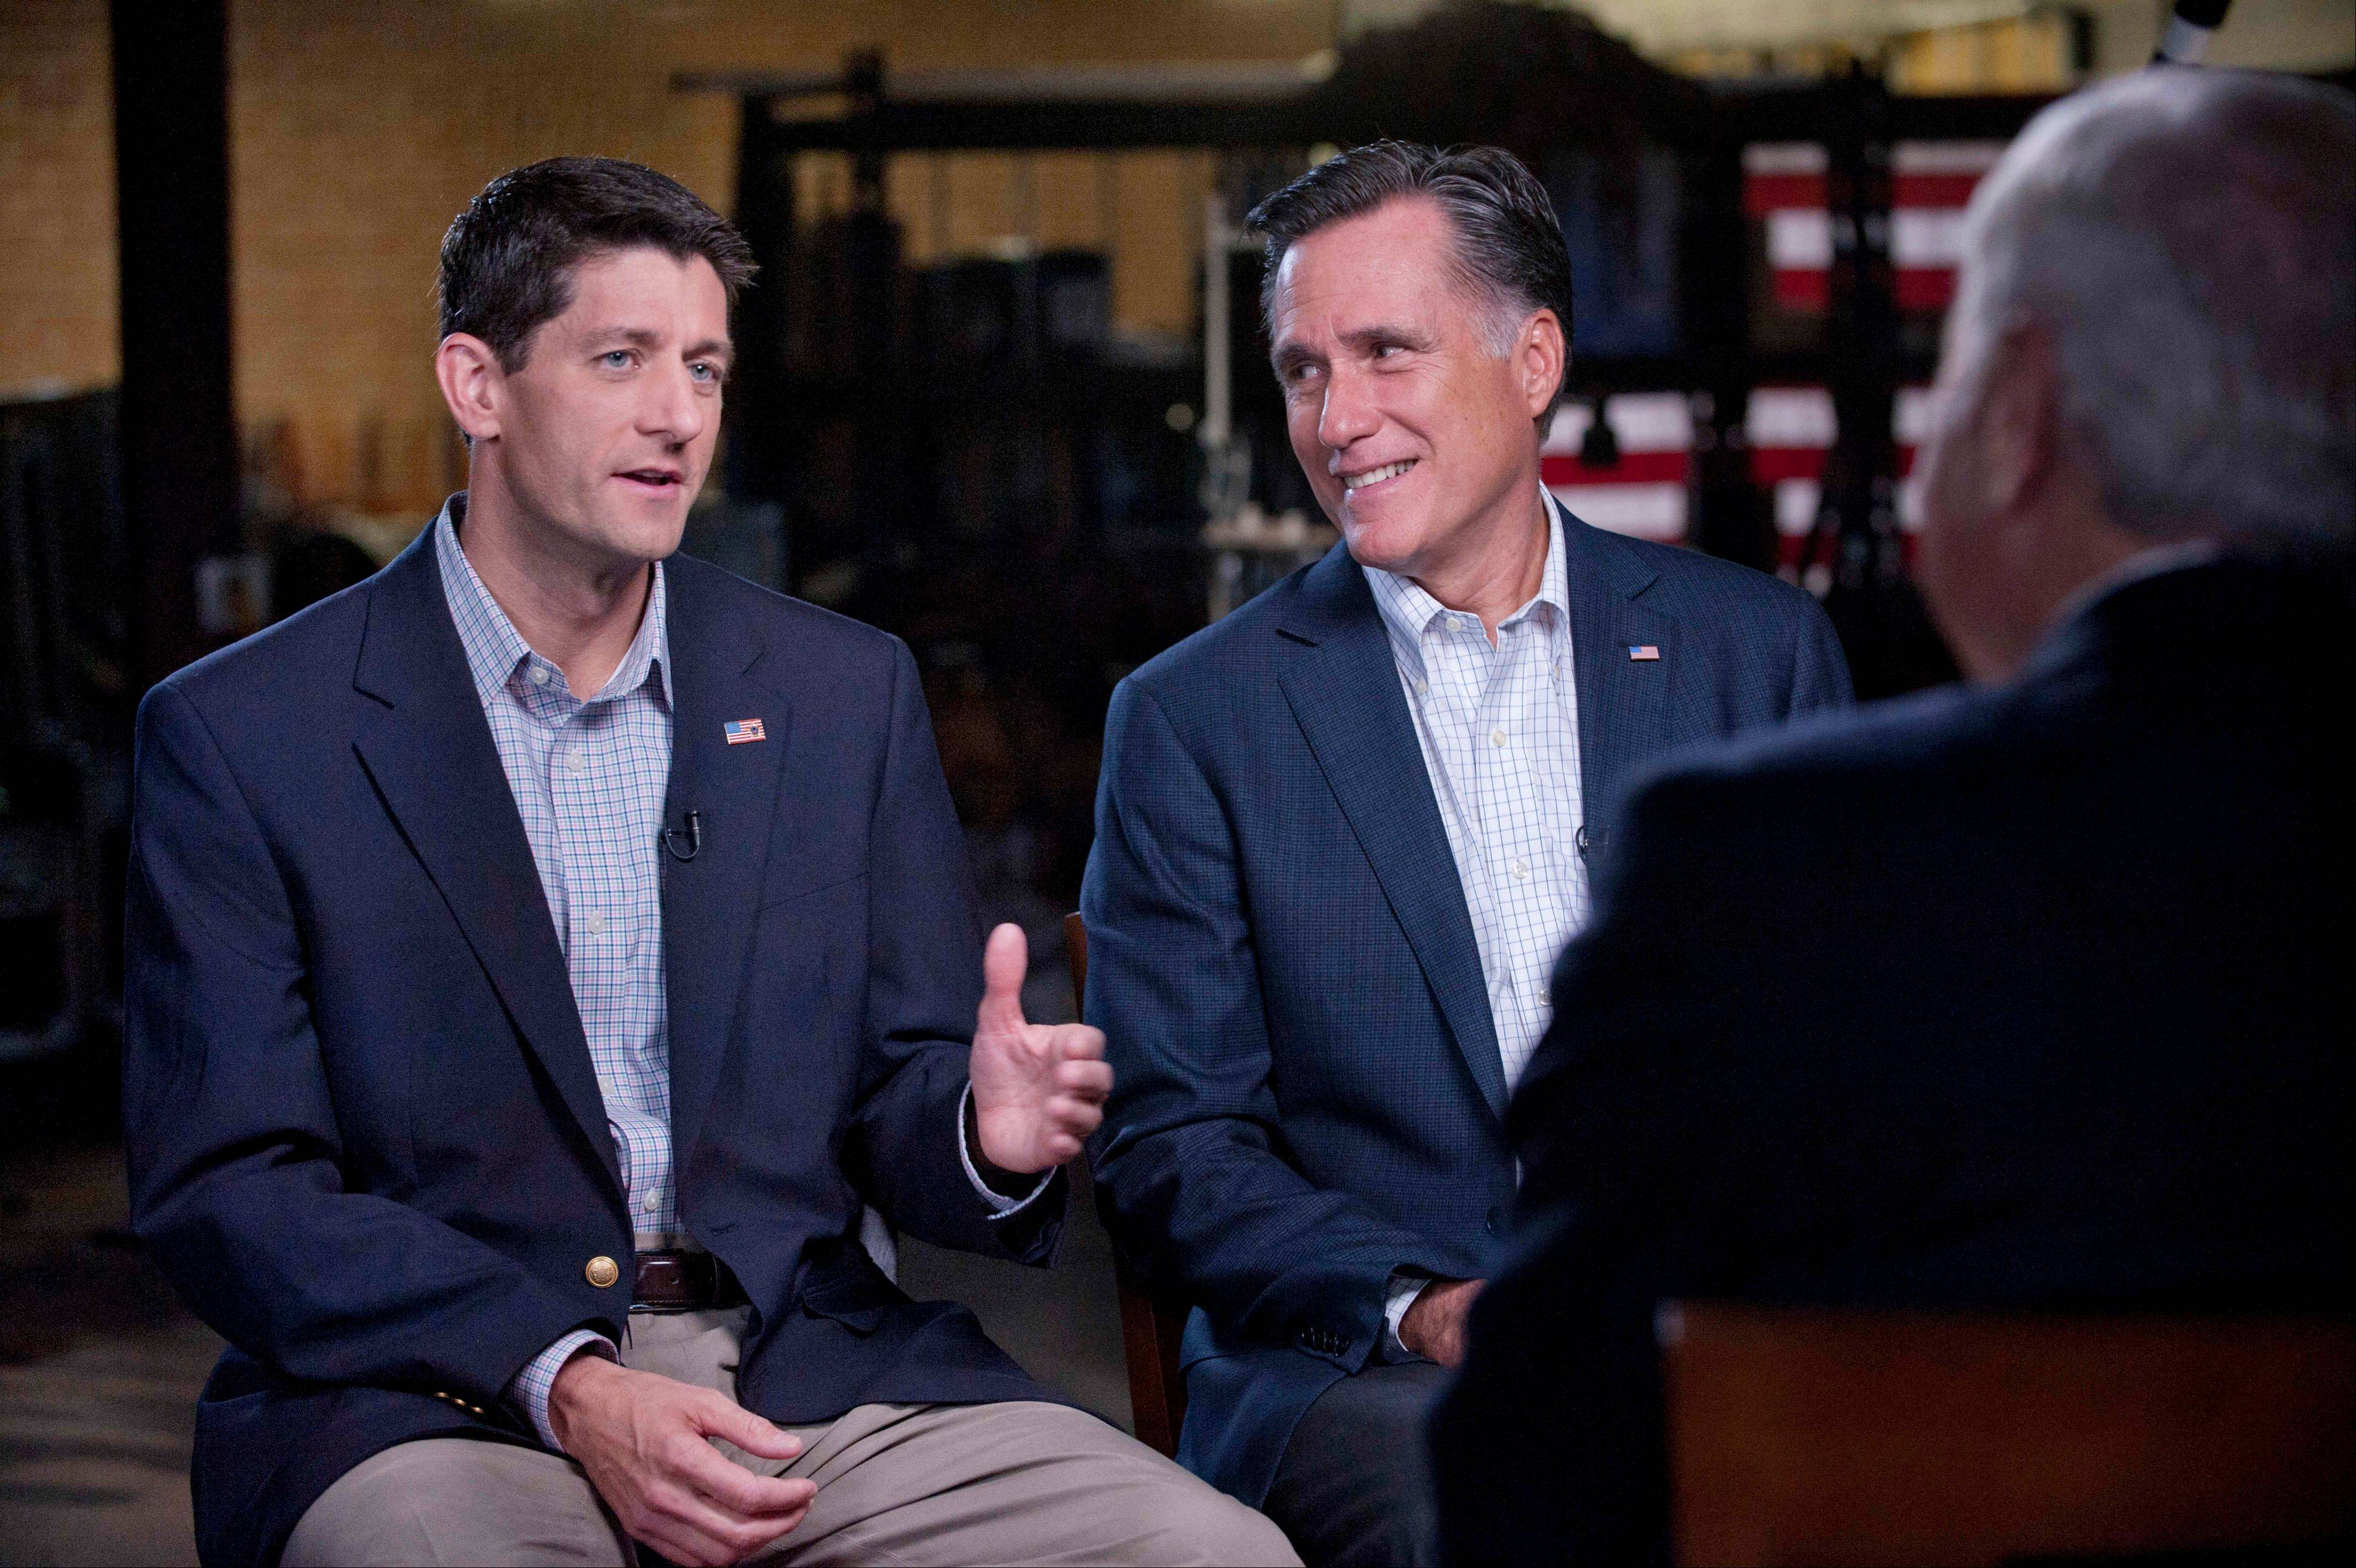 GOP Presidential nominee Mitt Romney and his newly chosen VP running mate Paul Ryan, left, talk with Bob Schieffer of �60 Minutes� on CBS Sunday. Ryan will meet voters at the Iowa State Fair this week.